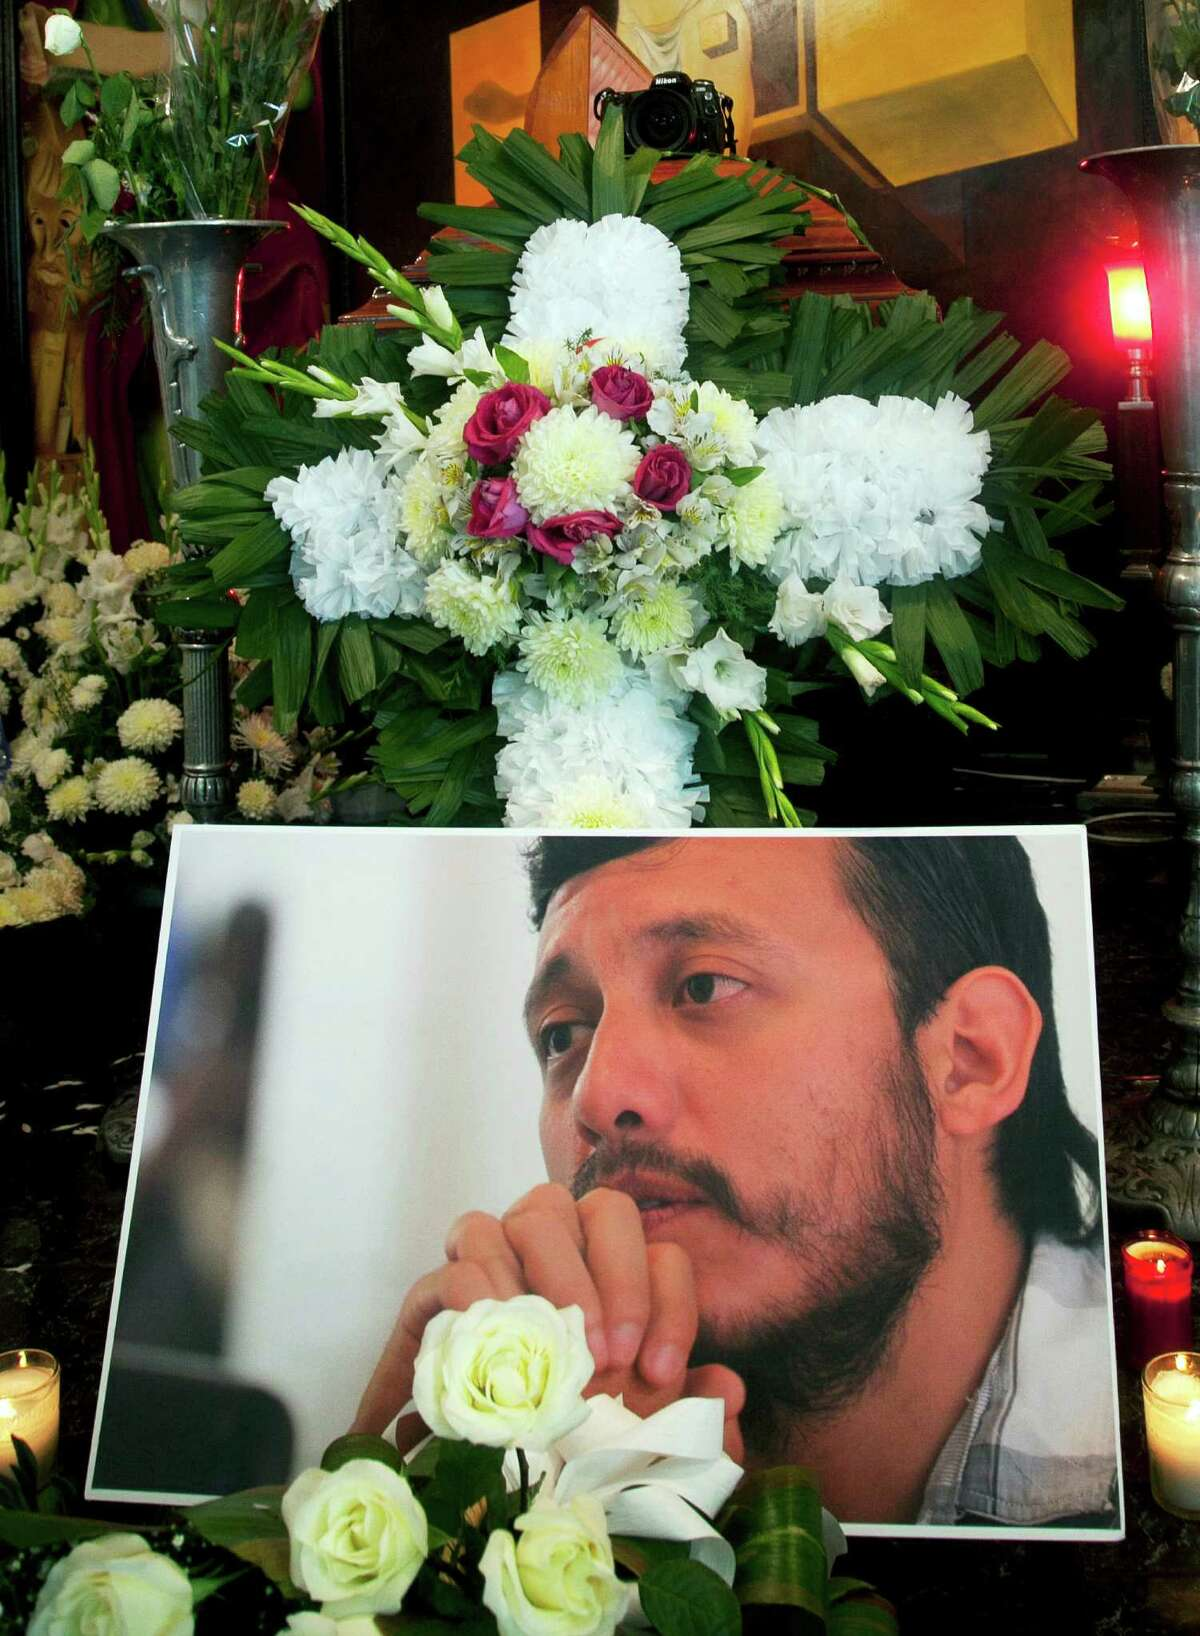 A photo of slain photojournal- ist Ruben Espinosa is in front of his casket in a funeral home in Mexico City.